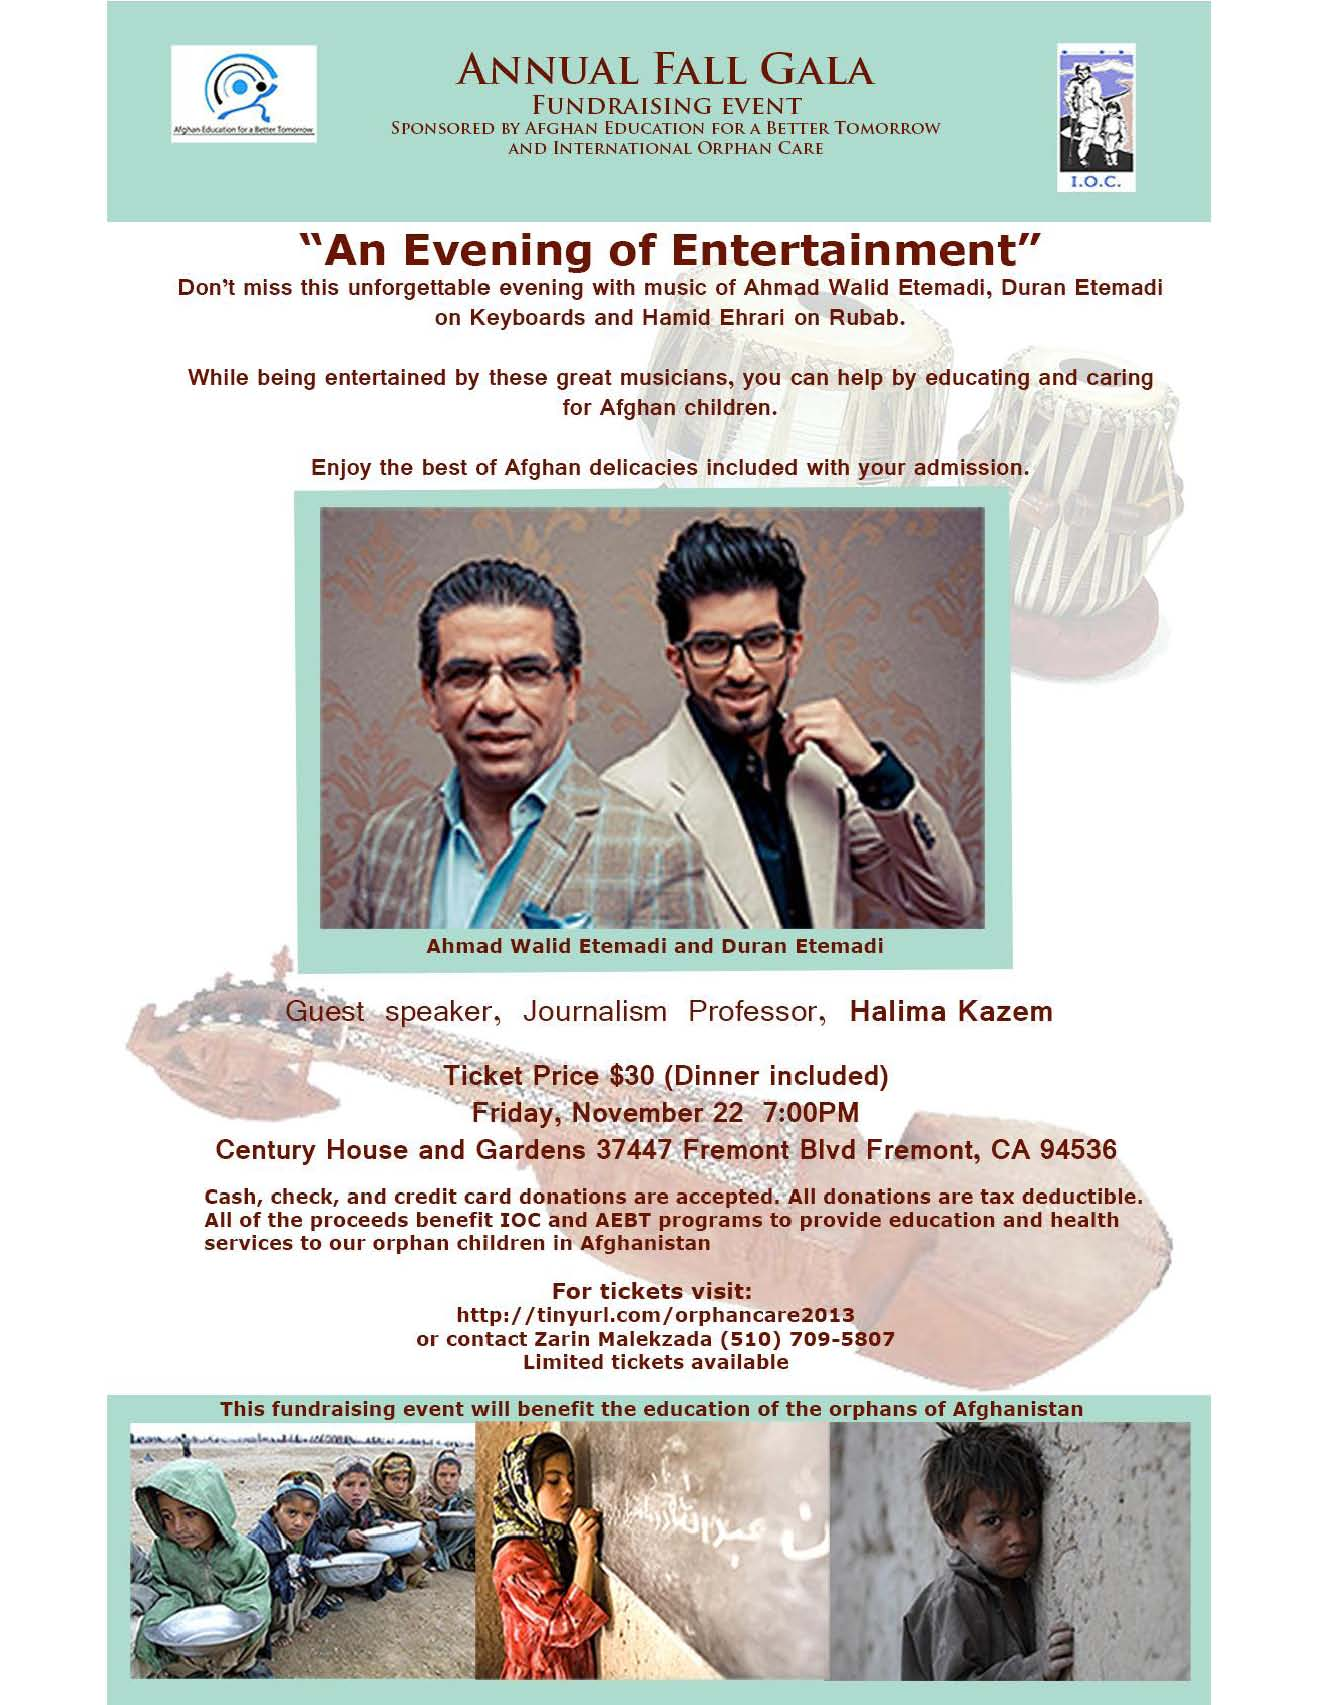 An Evening of Entertainment with Wahid Etemadi